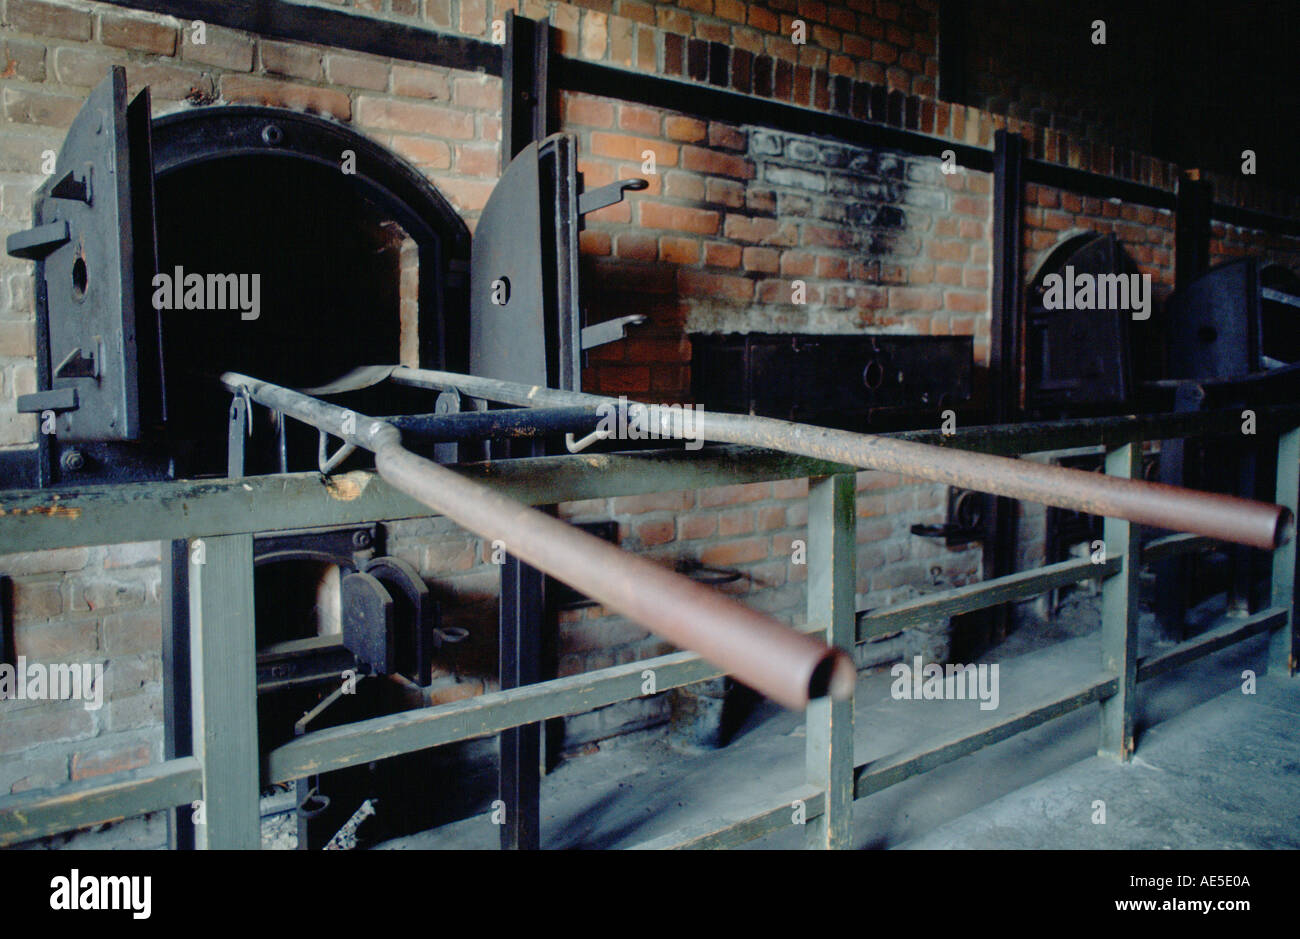 Gas ovens at the Majdanek Concentration Camp in Poland - Stock Image